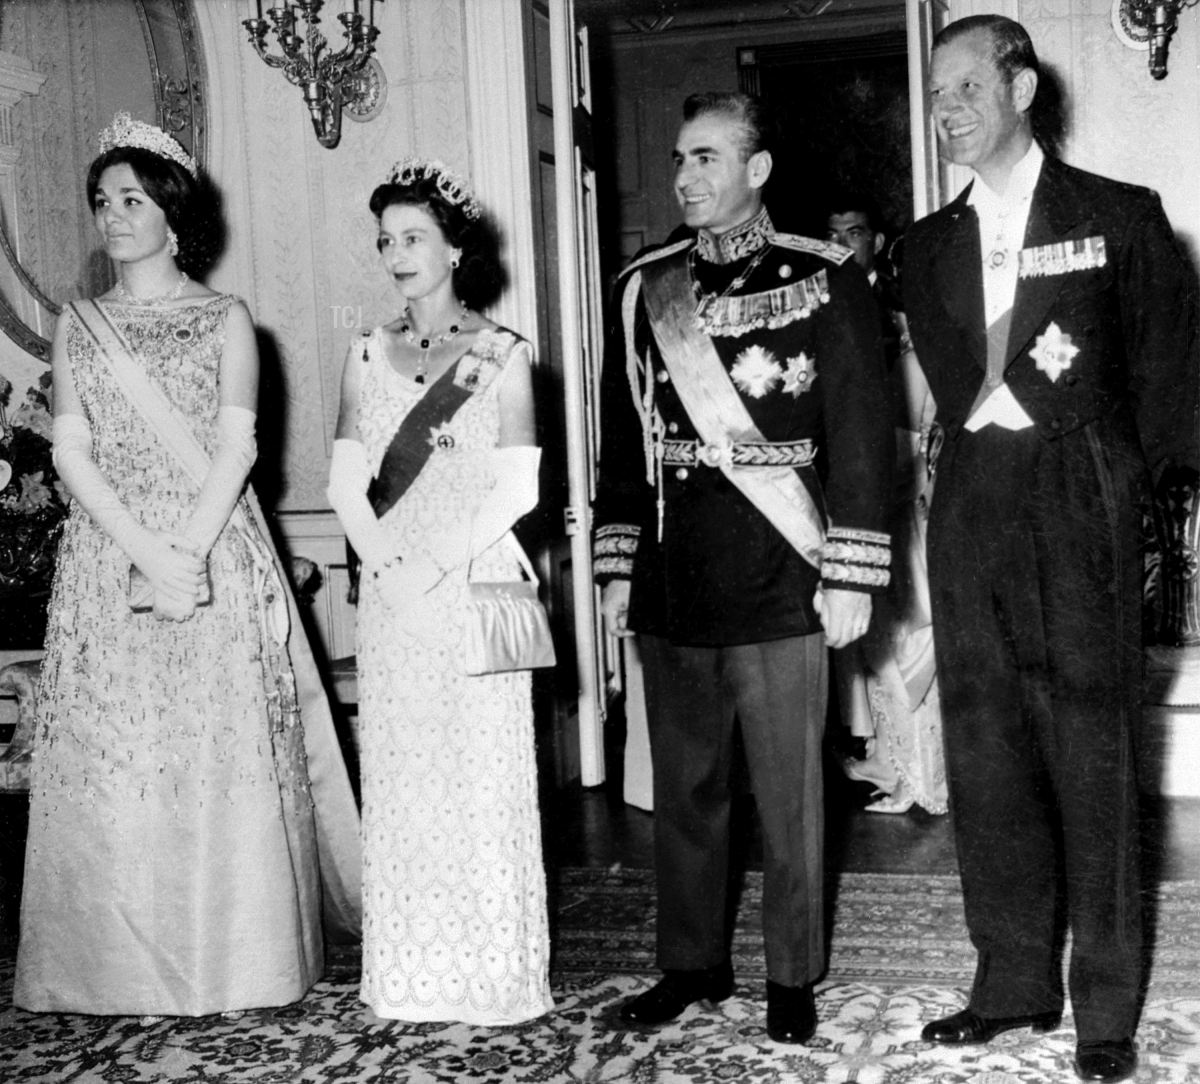 The Queen Elizabeth II and the Prince Philip pose with Iran Shah Mohammad Reza Pahlavi and his wife Farah Pahlavi during their state visit, March 1961 in Tehran